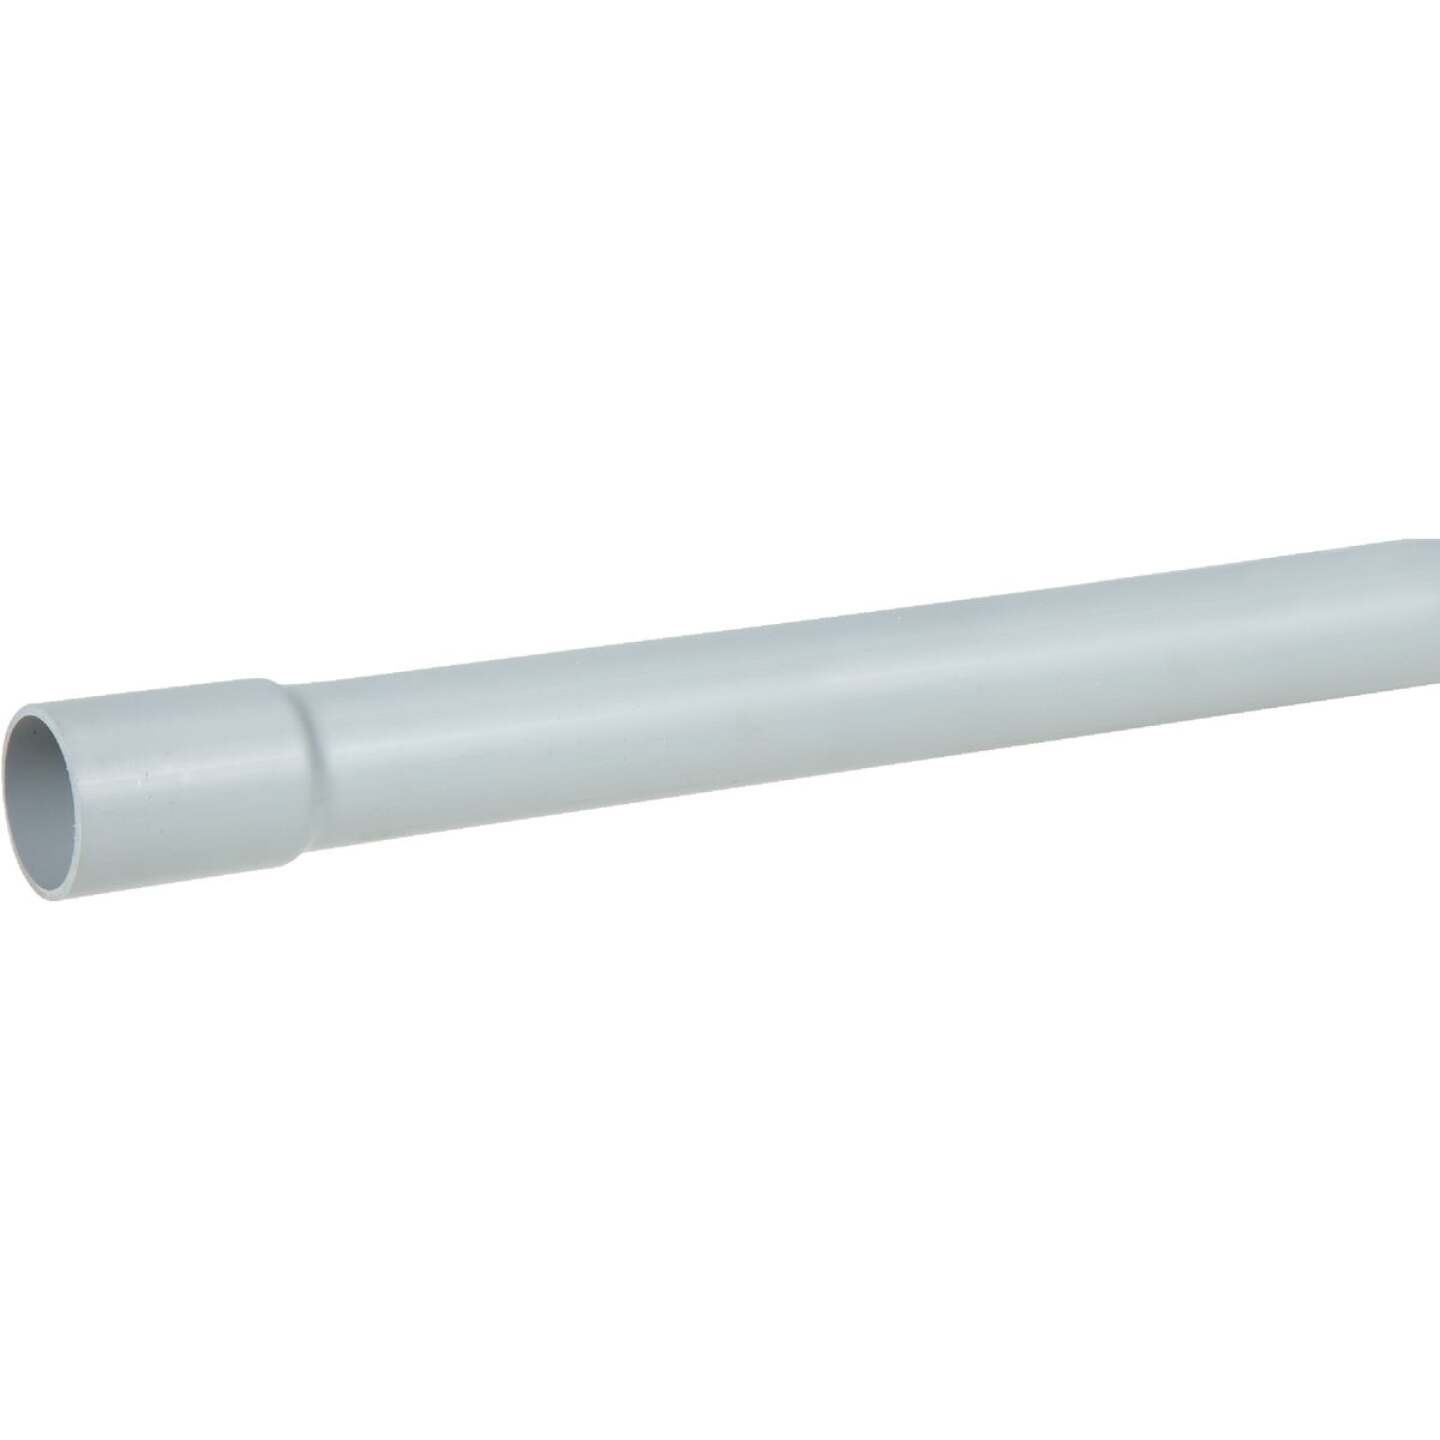 Allied 1/2 In. x 10 Ft. Schedule 40 PVC Conduit Image 1